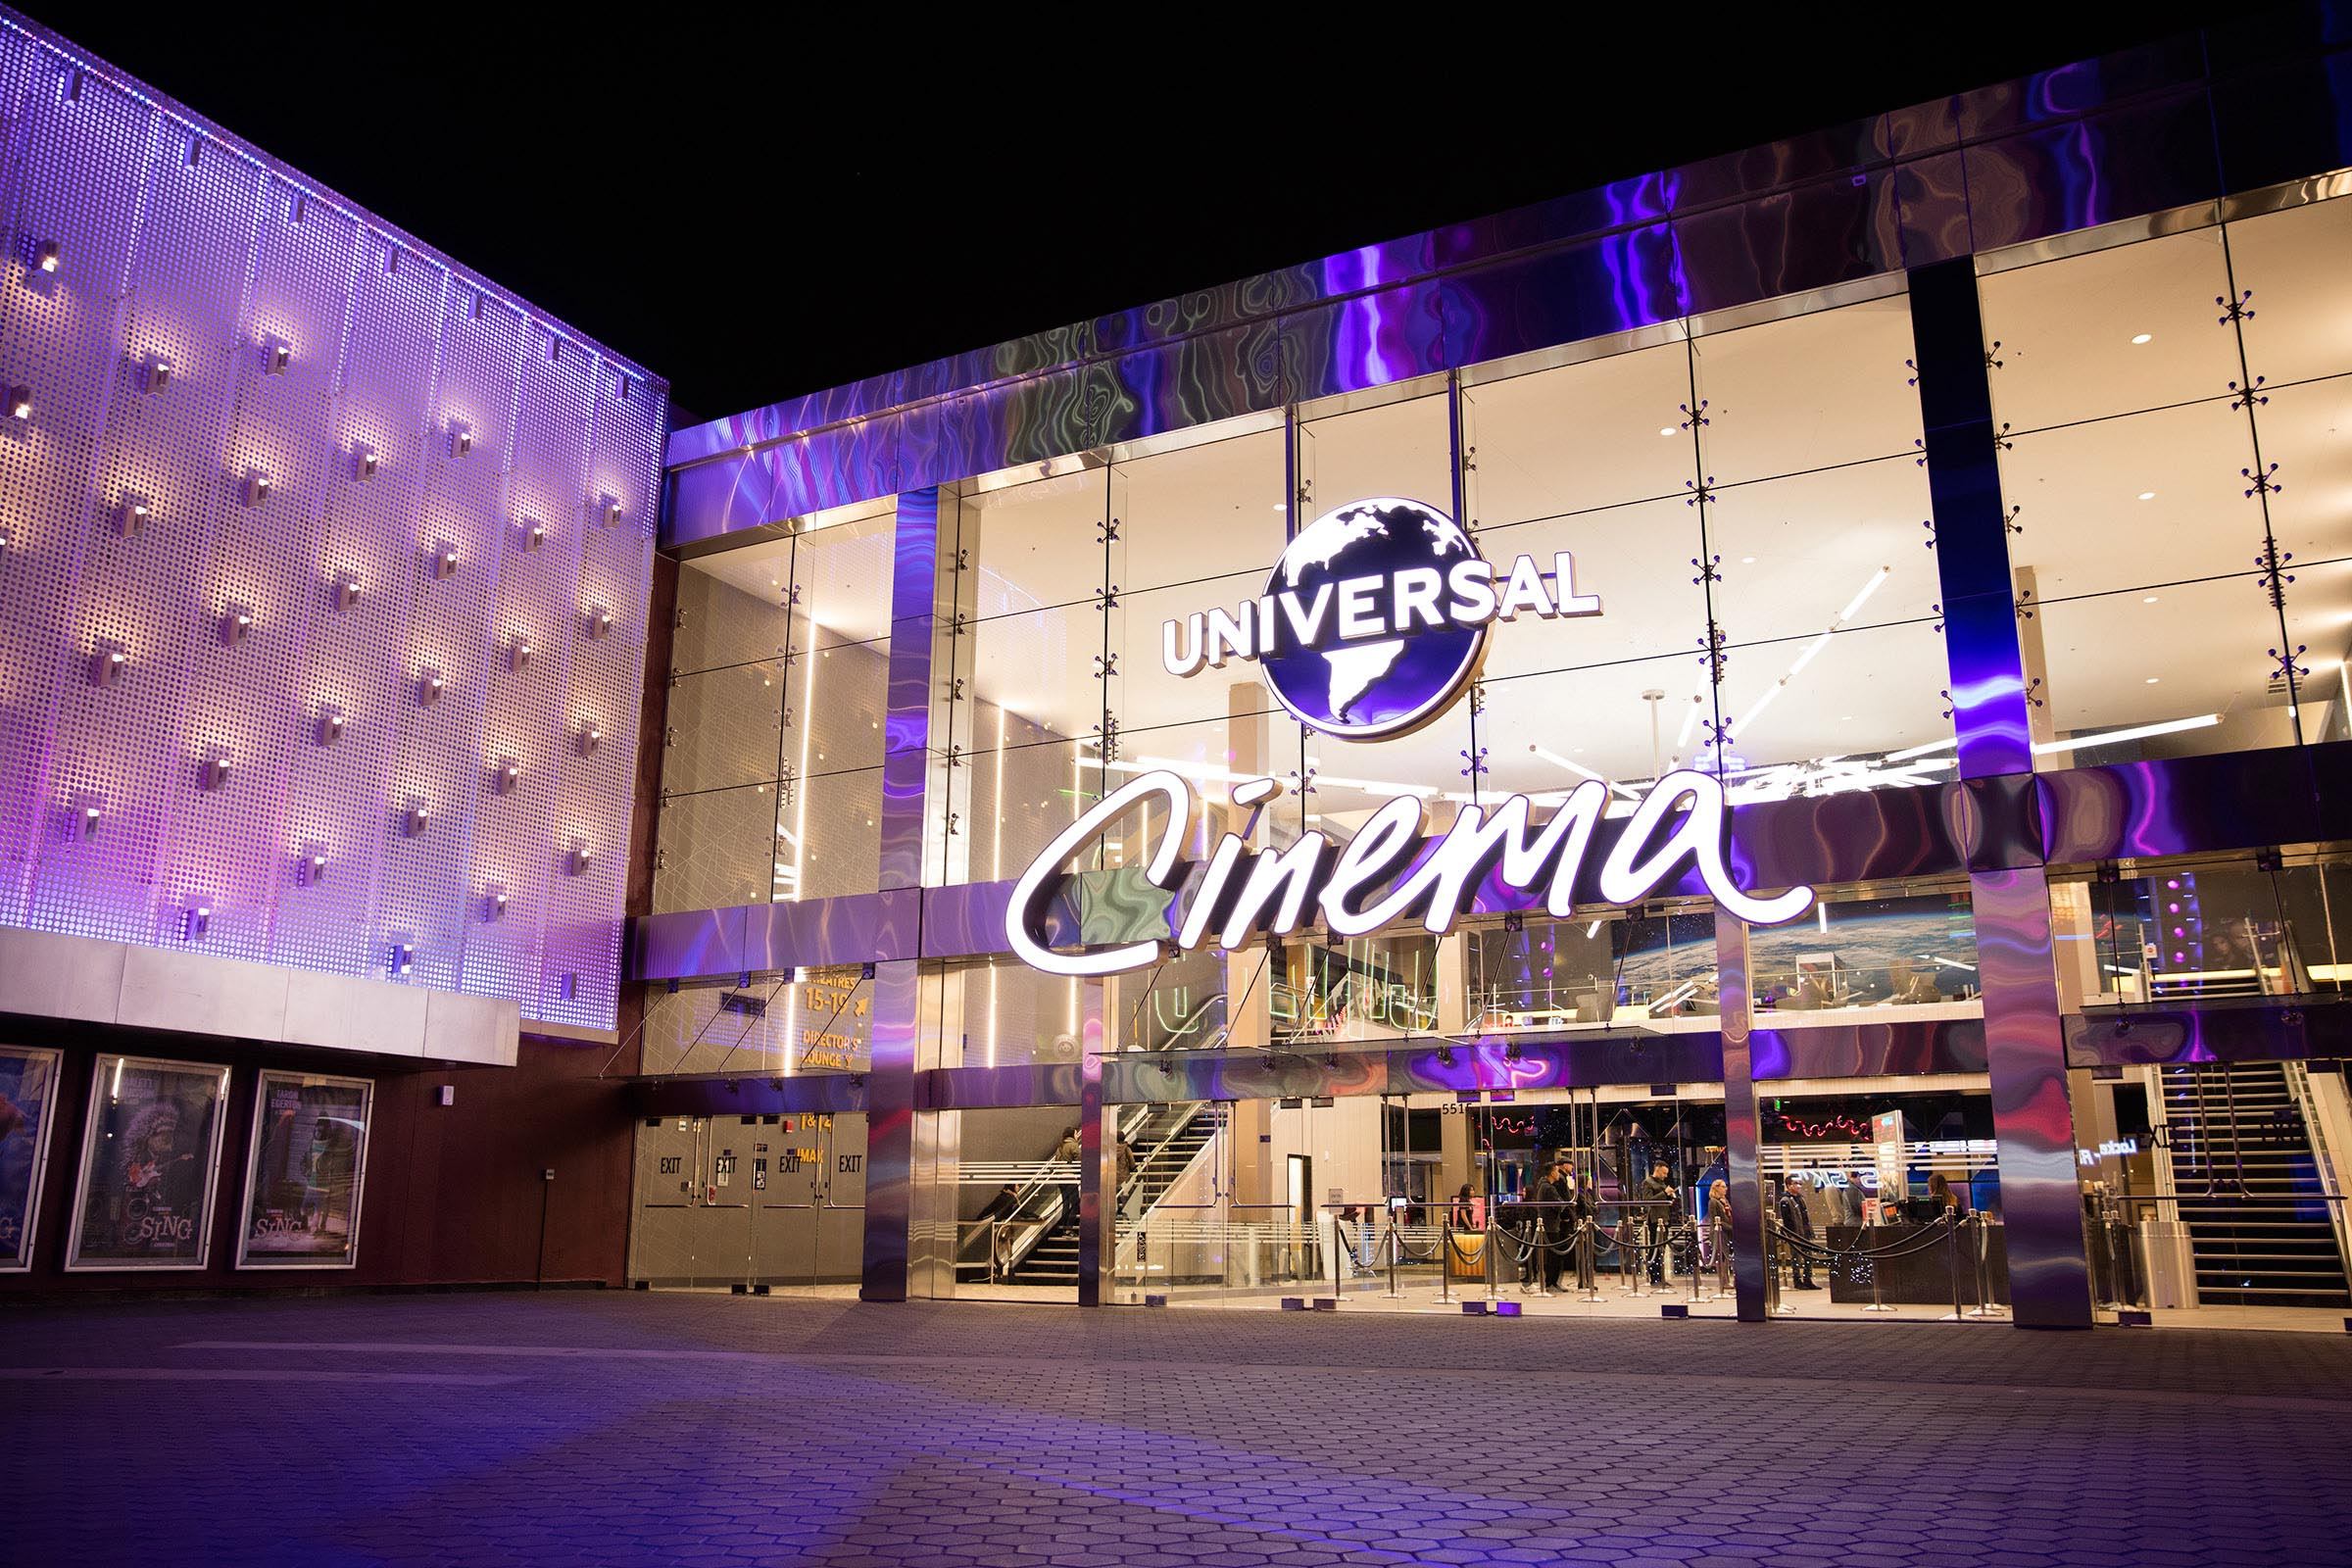 Newly renovated Universal Cinema at Universal CityWalk